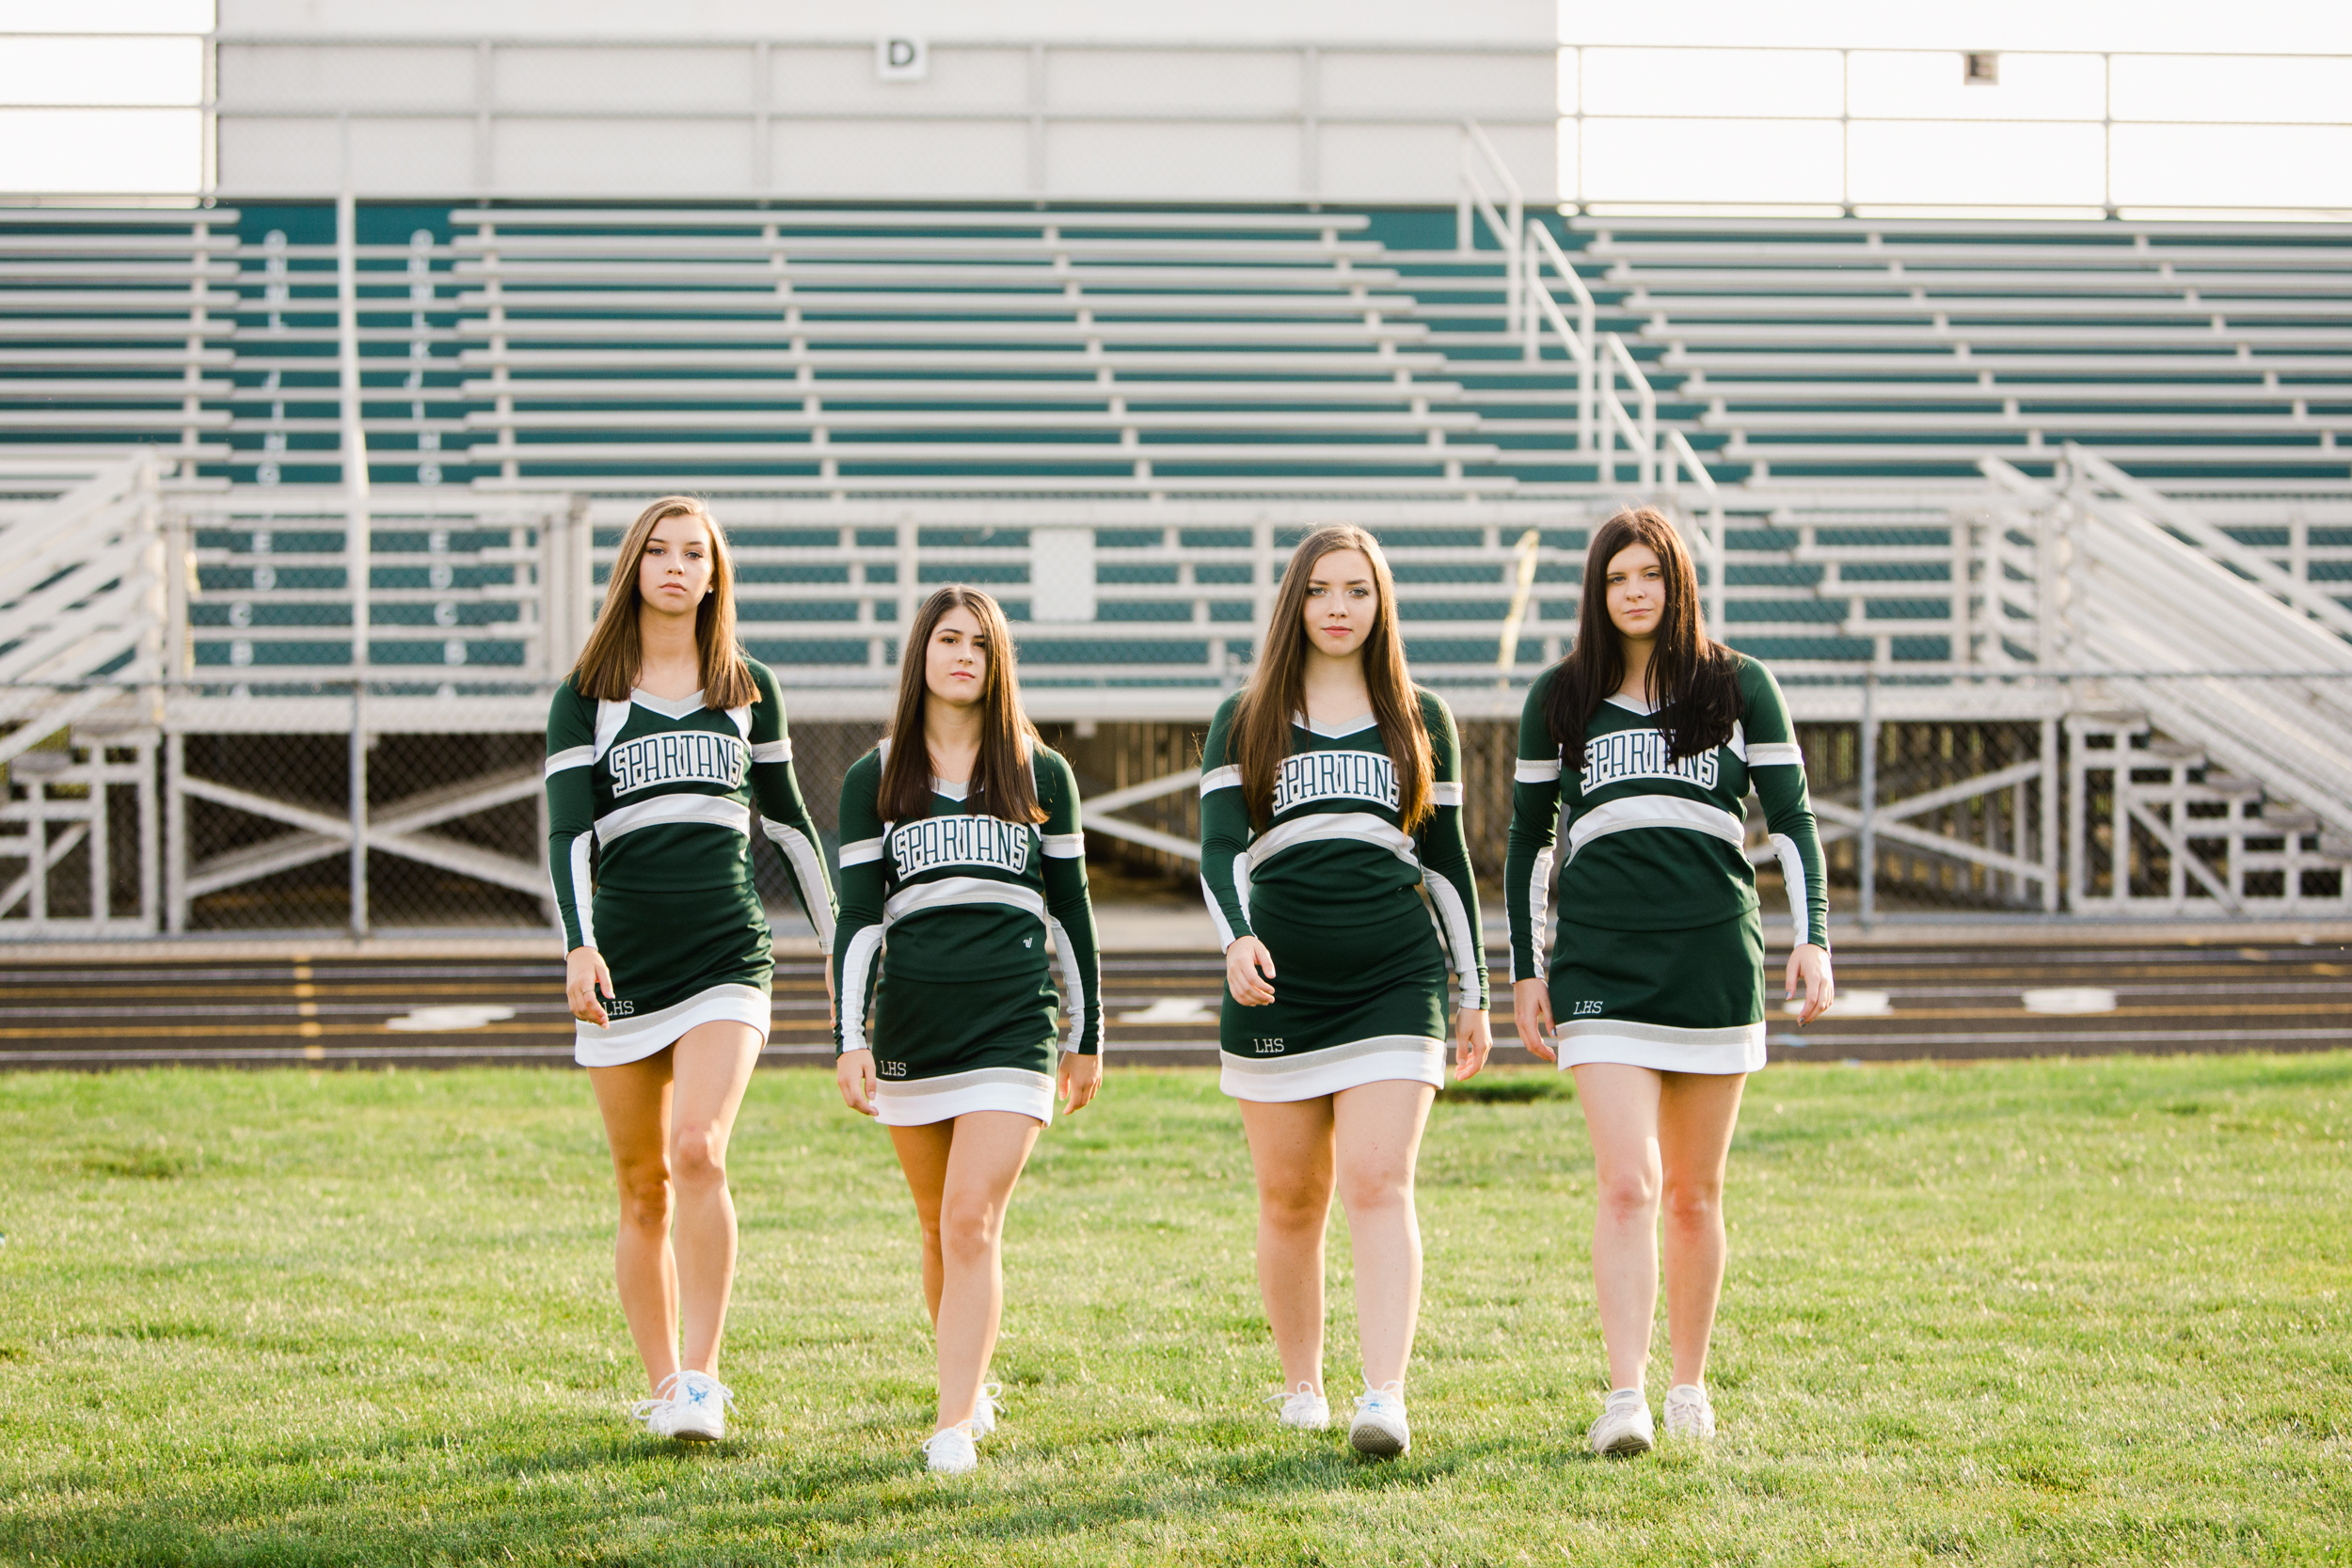 Laurel_HS_Varisty_Senior_2019_Cheerleaders (10 of 27).jpg